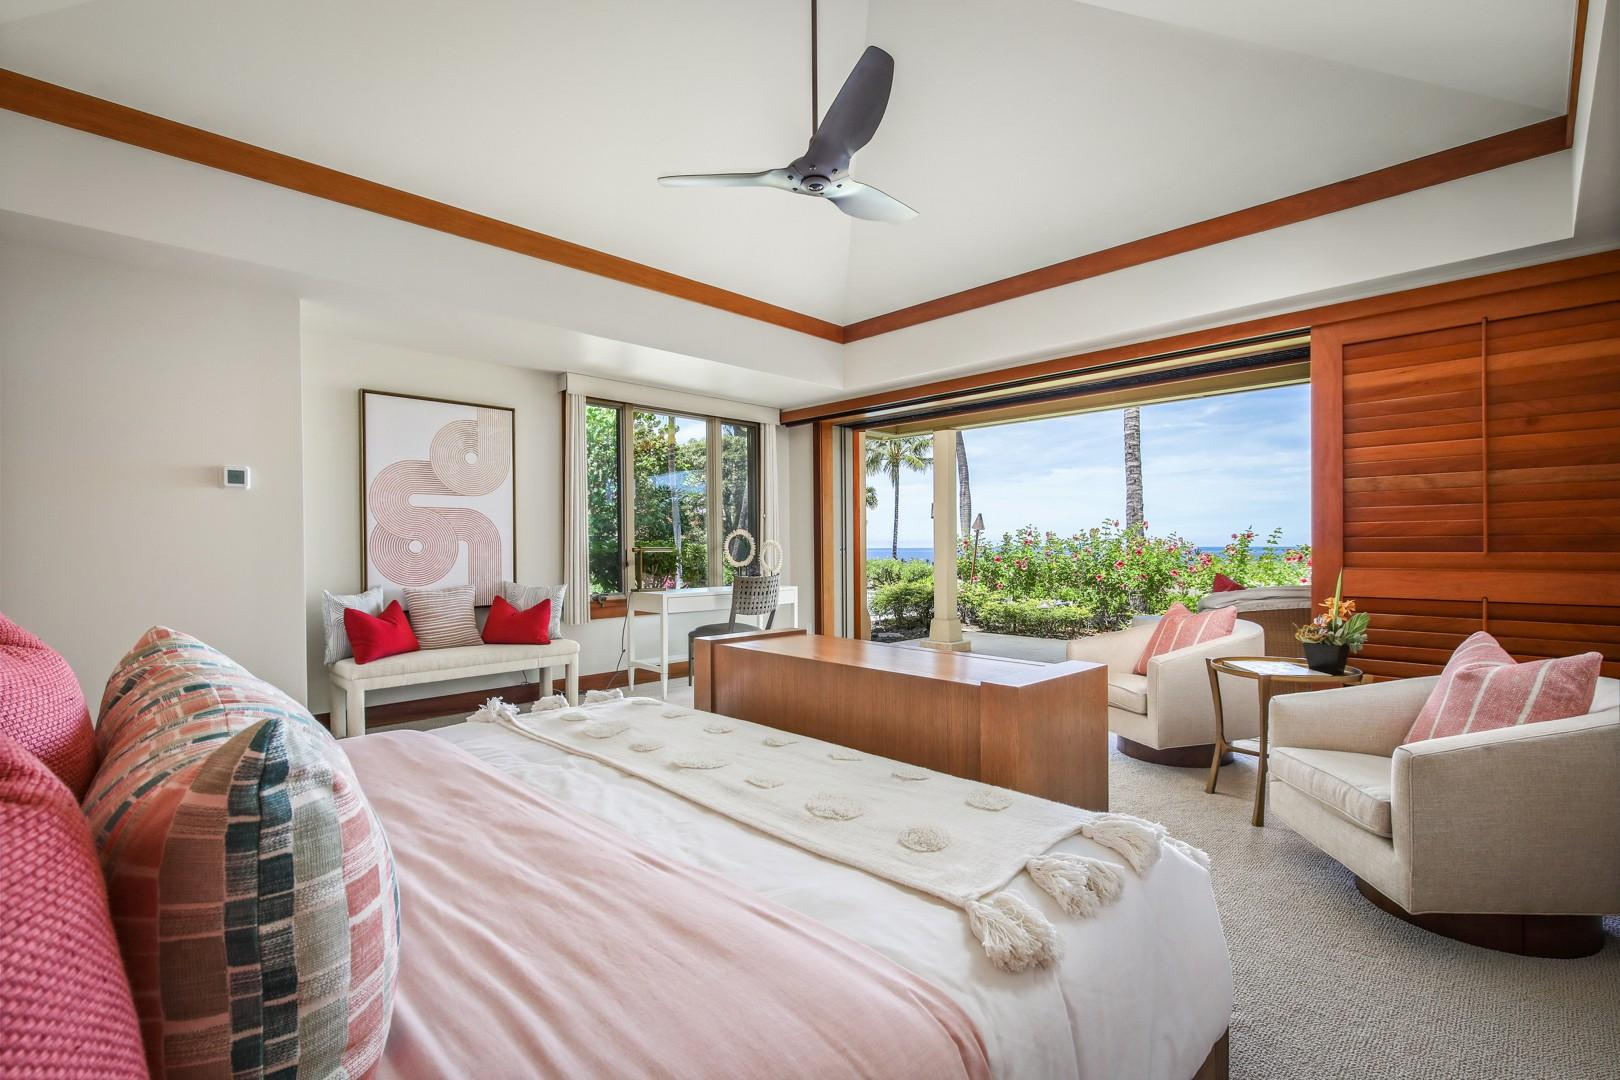 Master bedroom suite with seating area, private lanai, en suite bath and ocean views.